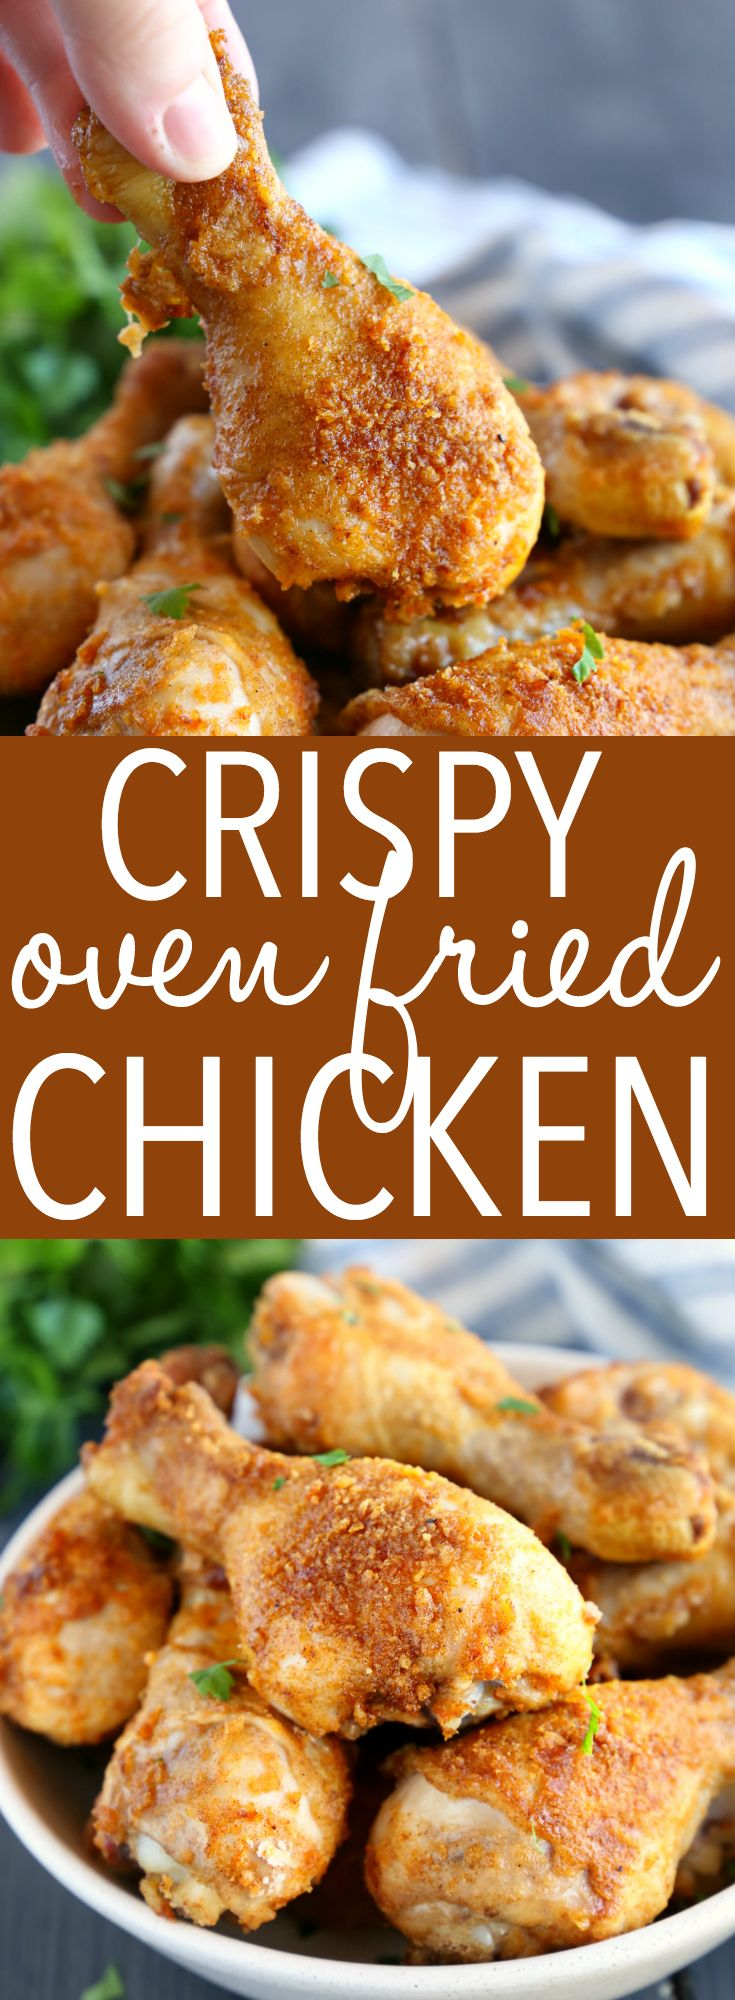 This Crispy Oven Fried Chicken is baked to crispy perfection in the oven with a delicious balance of herbs and spices! It's easy to make, lower in fat, and tastes just like fried chicken! And it's ready in under 30 minutes! Recipe from thebusybaker.ca! #ovenbakedchicken #crispychicken #healthychicken #ovenfriedchicken #copycatfriedchicken via @busybakerblog